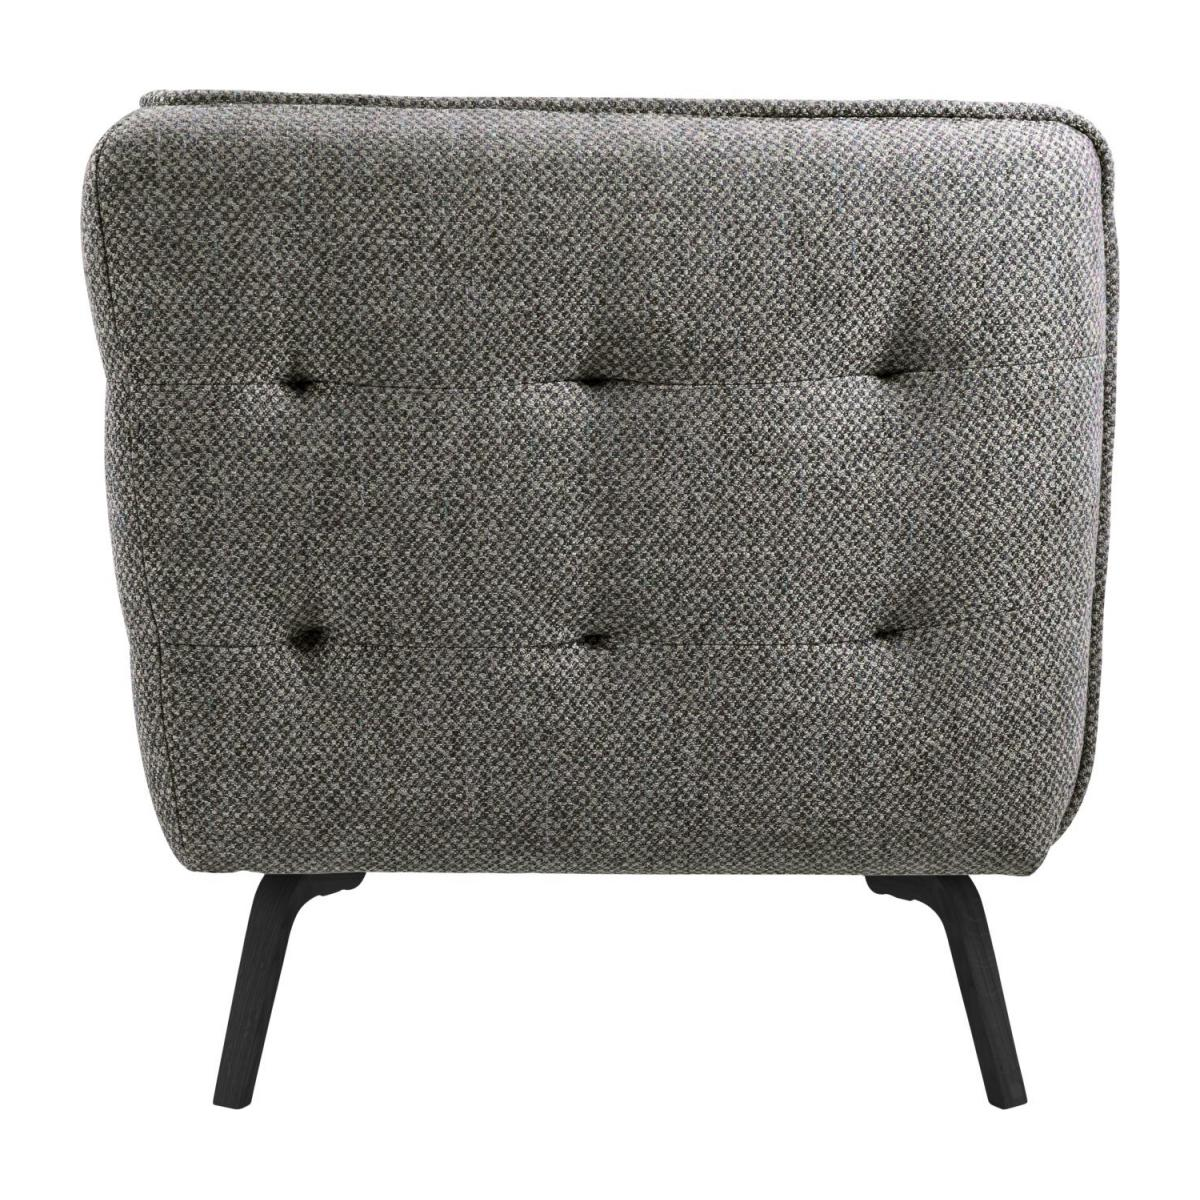 3 seater sofa in Bellagio fabric, night black and dark legs n°5